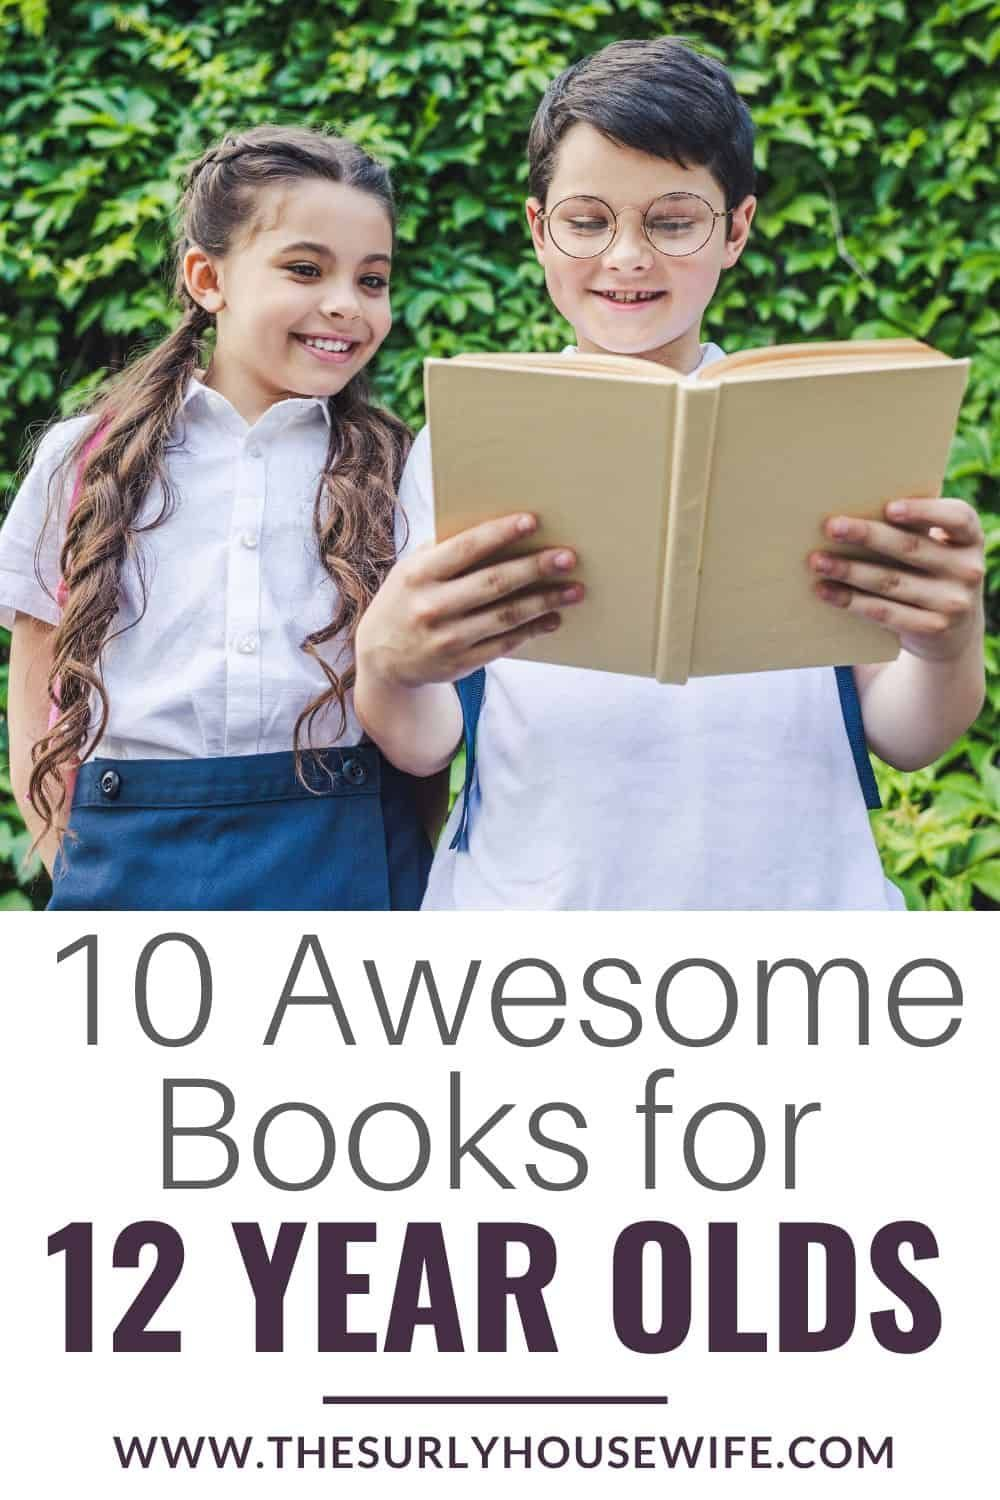 10 amazing books for 12 year olds for boys and girls in